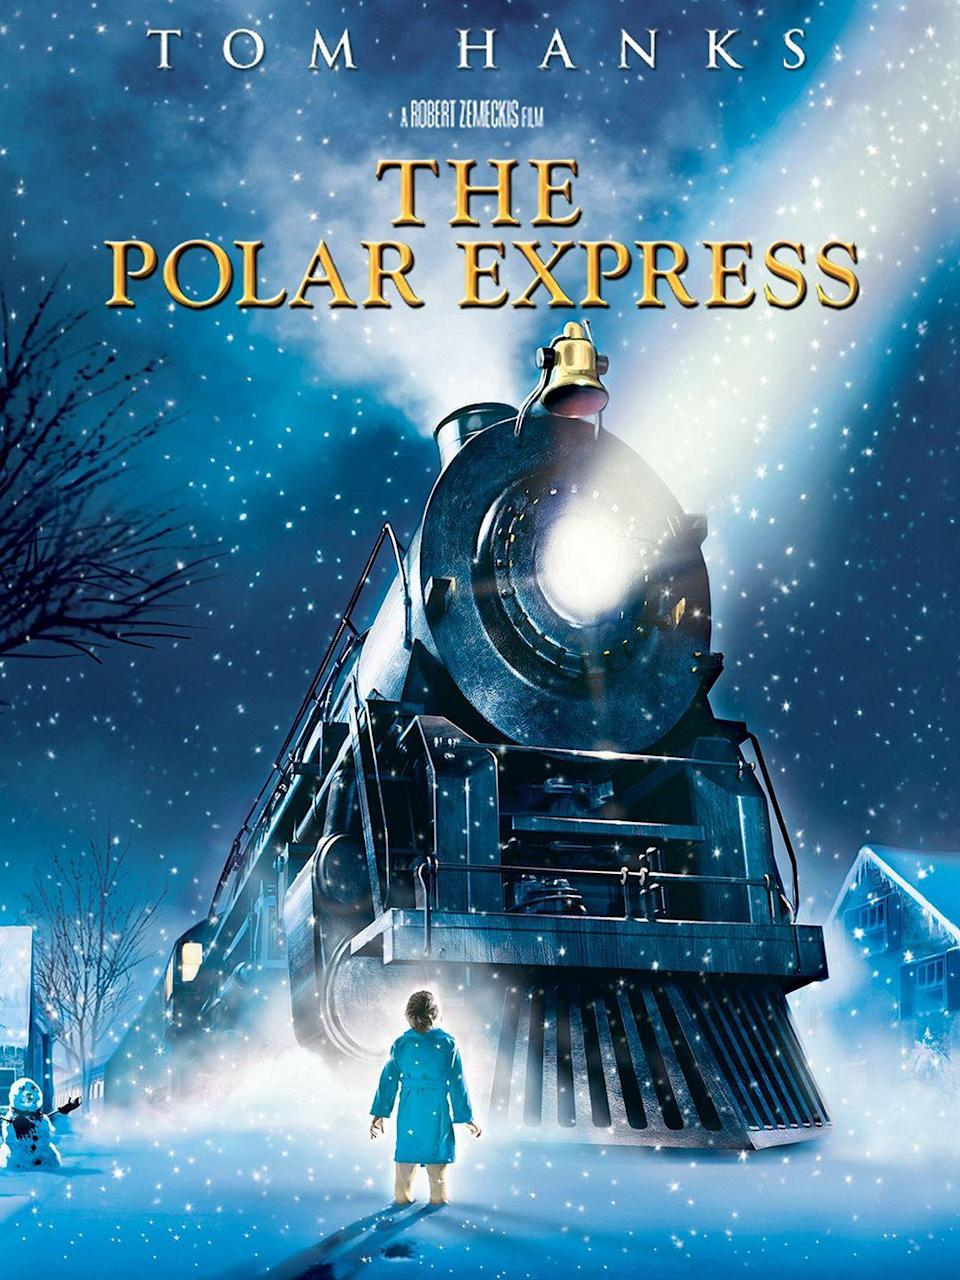 """<p><em>The Polar Express</em> features Tom Hanks in an animated adventure based on the <a href=""""https://www.amazon.com/Polar-Express-anniversary-Chris-Allsburg/dp/0544580141/?tag=syn-yahoo-20&ascsubtag=%5Bartid%7C10055.g.1315%5Bsrc%7Cyahoo-us"""" rel=""""nofollow noopener"""" target=""""_blank"""" data-ylk=""""slk:children's book"""" class=""""link rapid-noclick-resp"""">children's book</a> by Chris Van Allsburg. In the 2004 flick, a little boy takes a magical train ride to the North Pole.</p><p><a class=""""link rapid-noclick-resp"""" href=""""https://www.amazon.com/Polar-Express-Tom-Hanks/dp/B0011TNVLY/?tag=syn-yahoo-20&ascsubtag=%5Bartid%7C10055.g.1315%5Bsrc%7Cyahoo-us"""" rel=""""nofollow noopener"""" target=""""_blank"""" data-ylk=""""slk:WATCH NOW"""">WATCH NOW</a></p><p><strong>RELATED: </strong><a href=""""https://www.goodhousekeeping.com/life/parenting/g23363159/best-kids-movies/"""" rel=""""nofollow noopener"""" target=""""_blank"""" data-ylk=""""slk:60 Best Kids' Movies of All Time, From Old Classics to New Favorites"""" class=""""link rapid-noclick-resp"""">60 Best Kids' Movies of All Time, From Old Classics to New Favorites</a> </p>"""